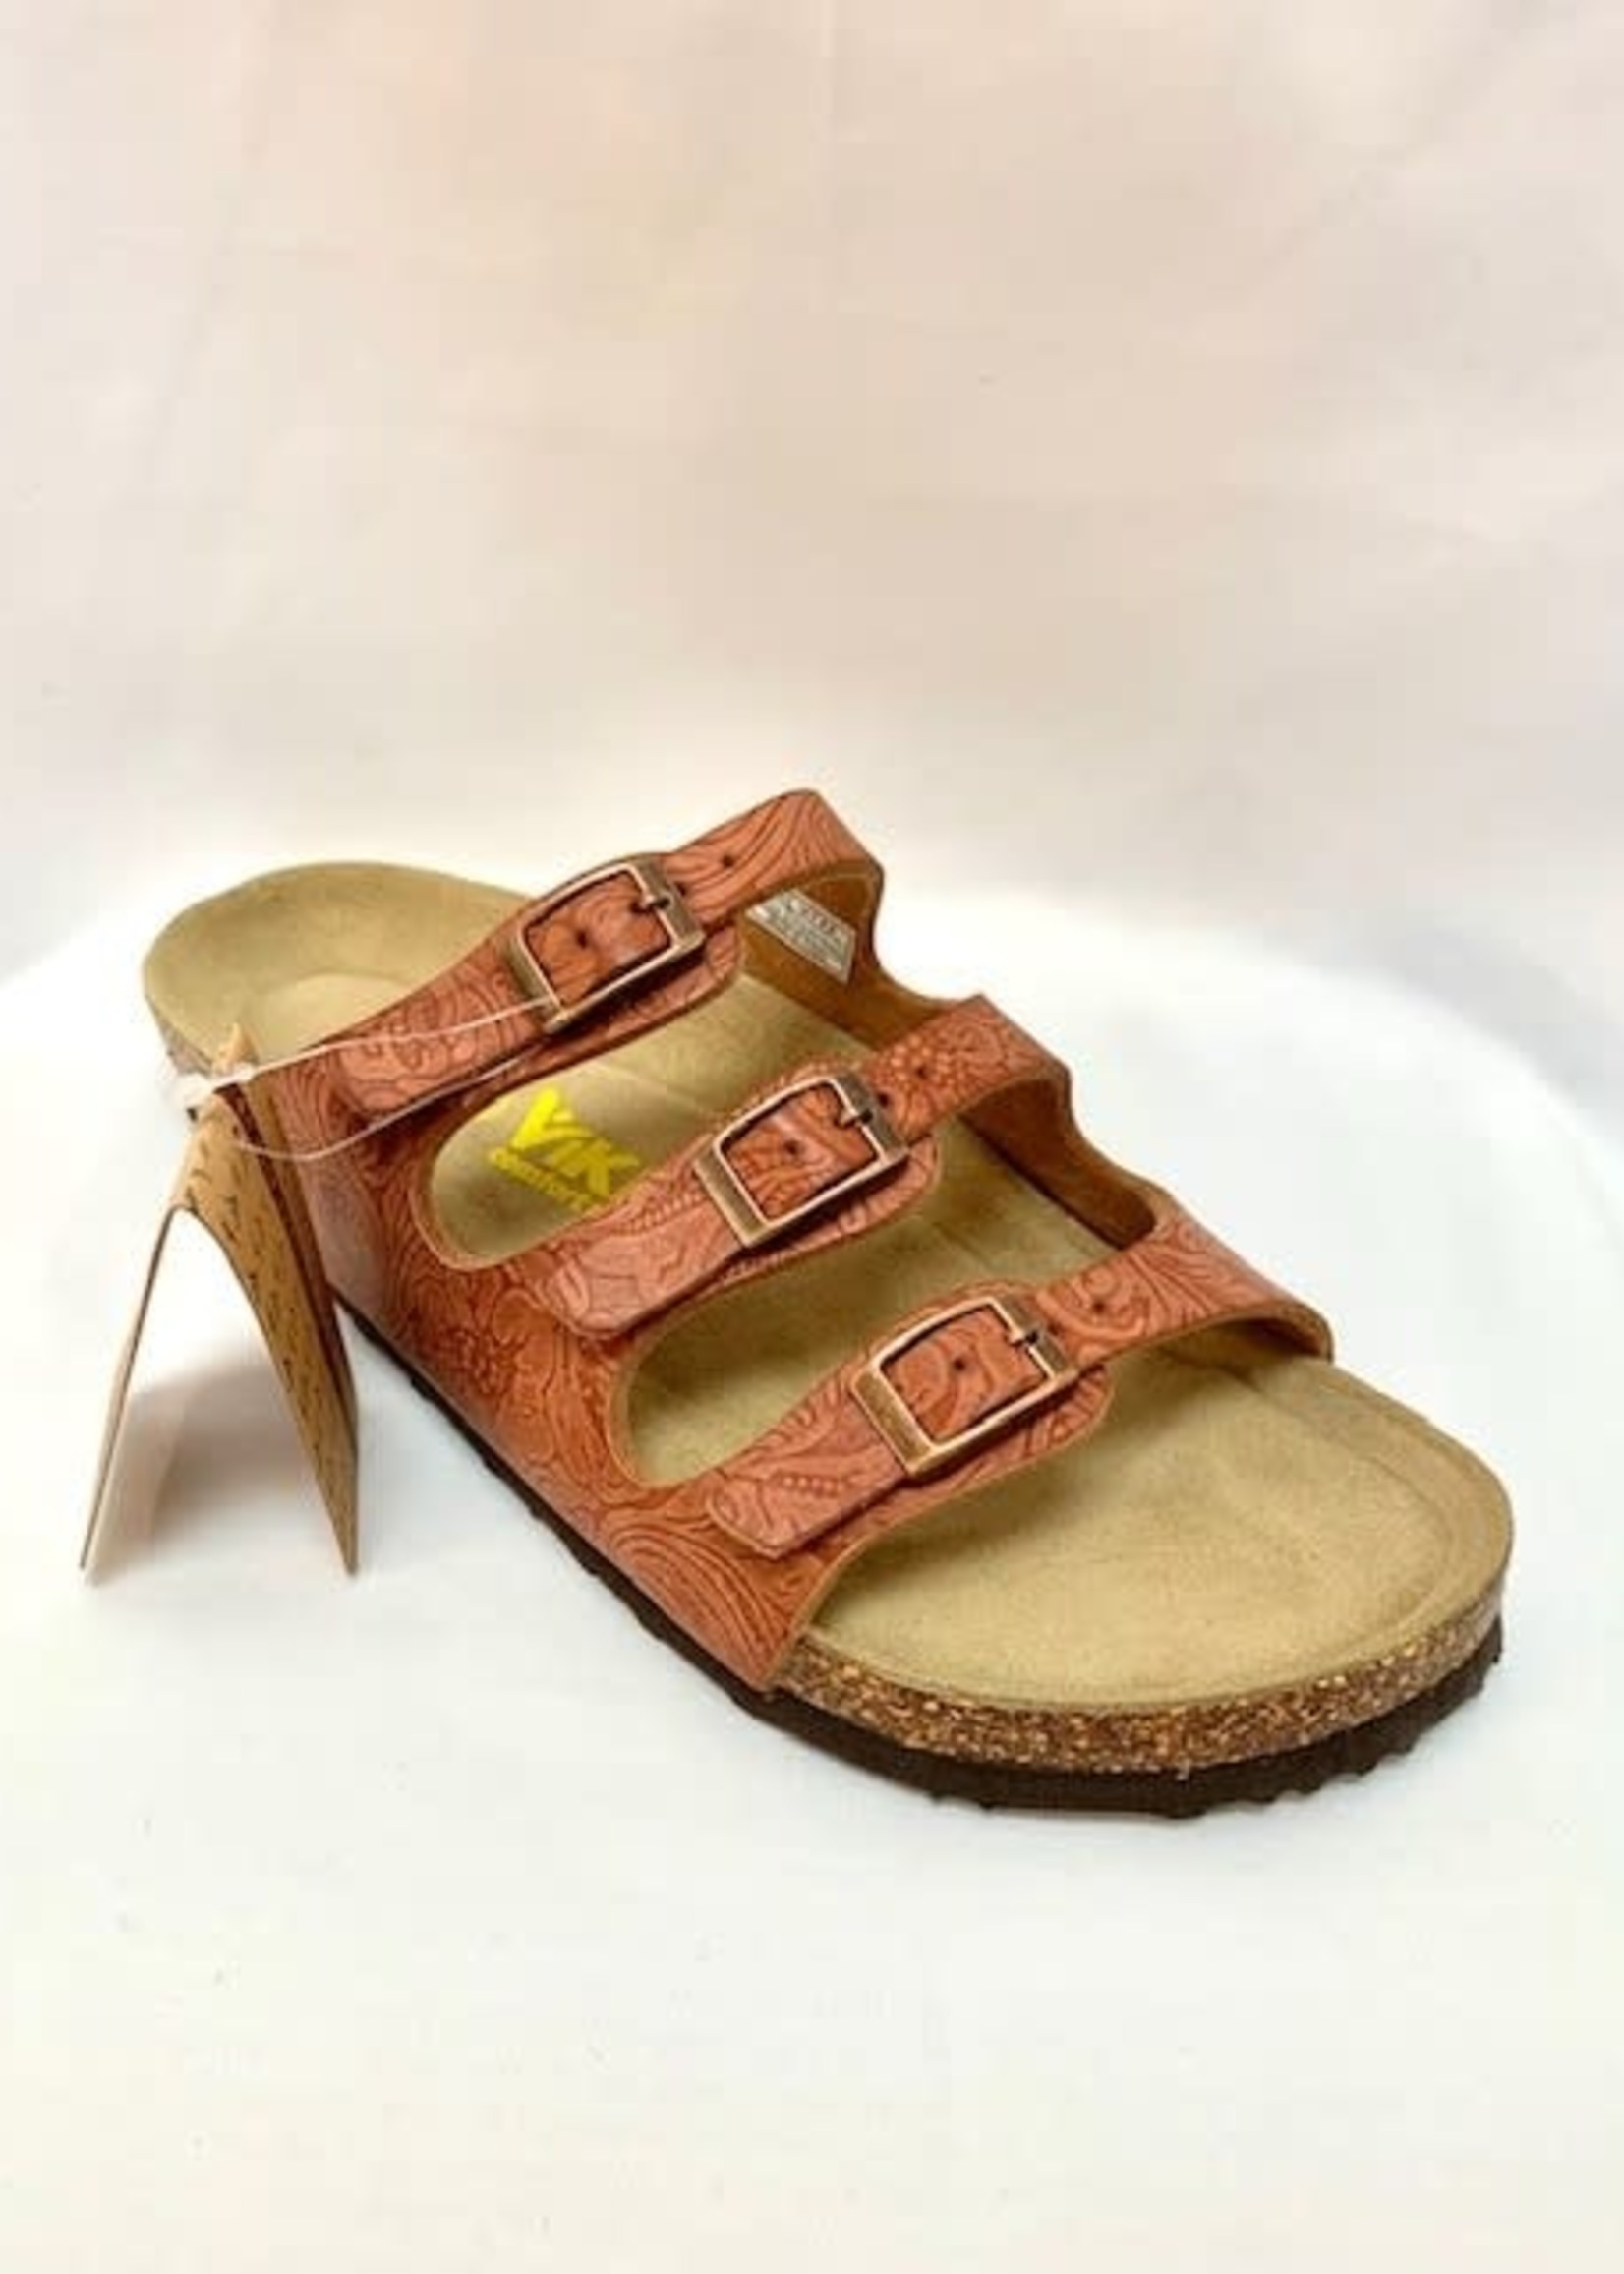 Viking Banff sandal, comes in two variants